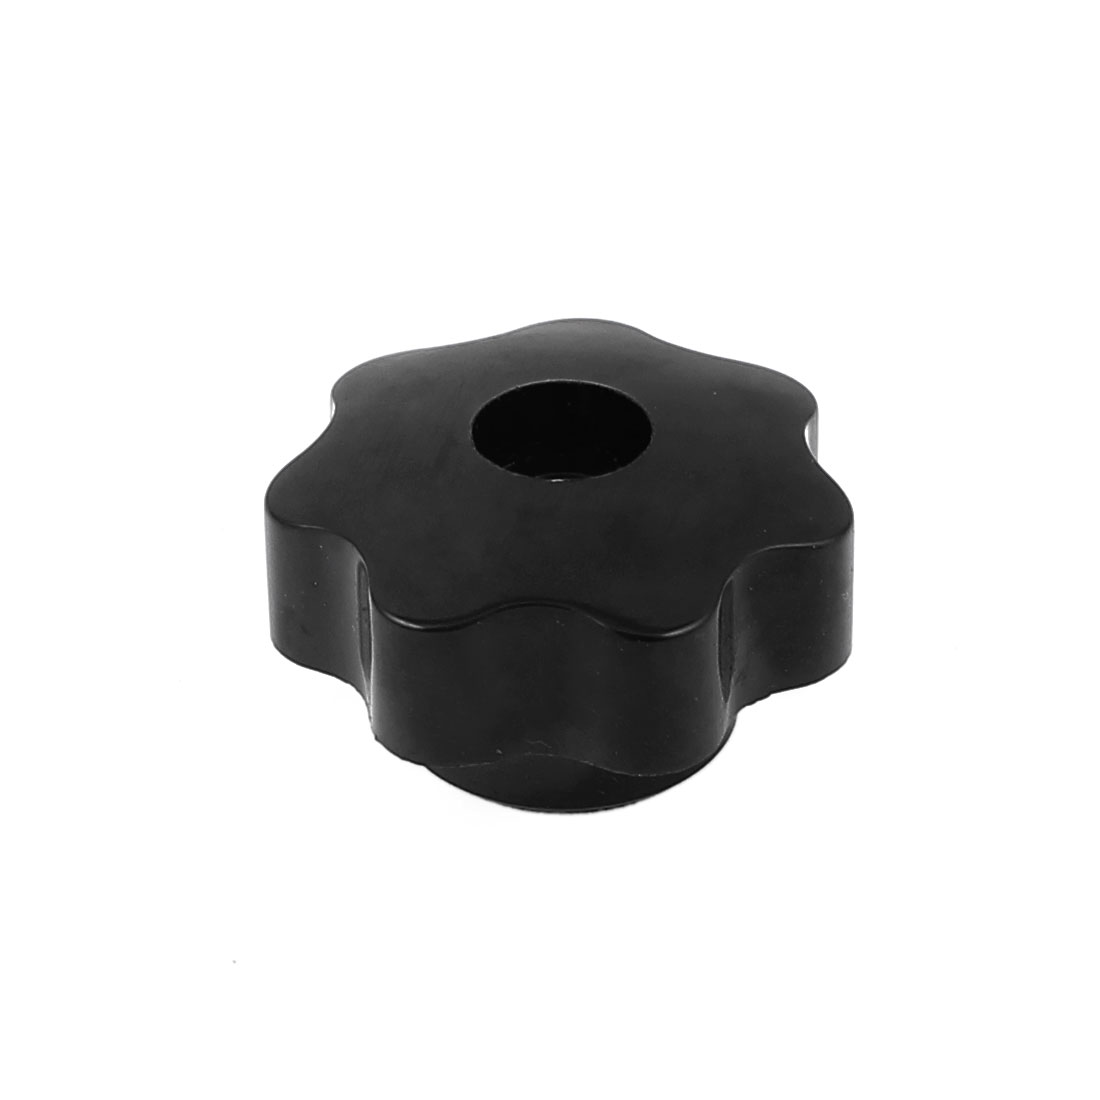 39mm Dia 5mm Threaded Plastic Screw On Type Star Shaped Head Clamping Knob Grip Handle